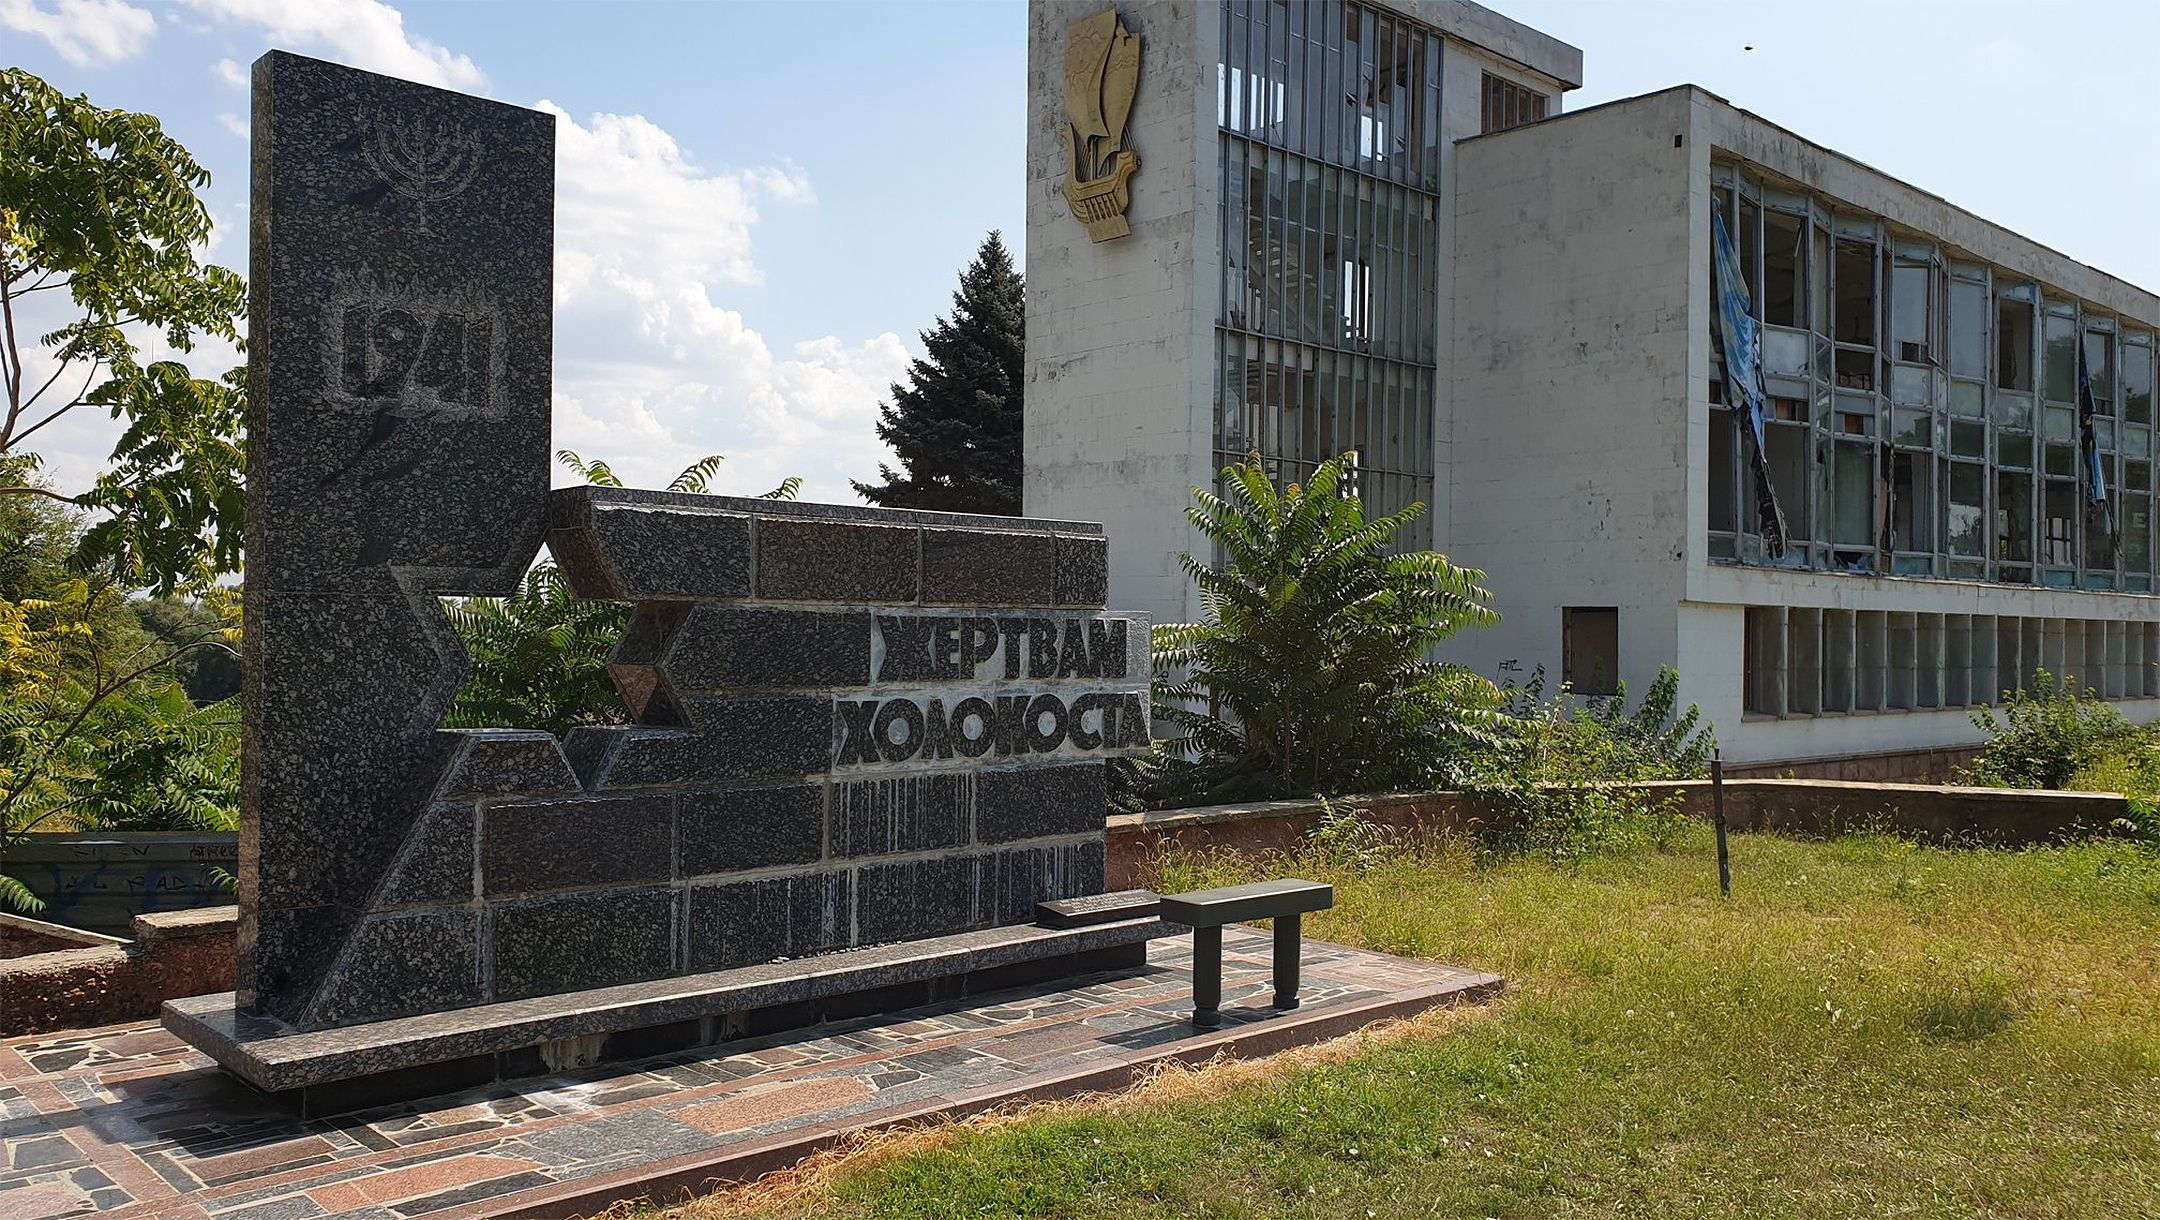 A Holocaust monument next to a deserted riverside building in Tiraspol, Transnistria on Aug. 24, 2019. (Courtesy of Roman Yanushevsky/Channel 9)